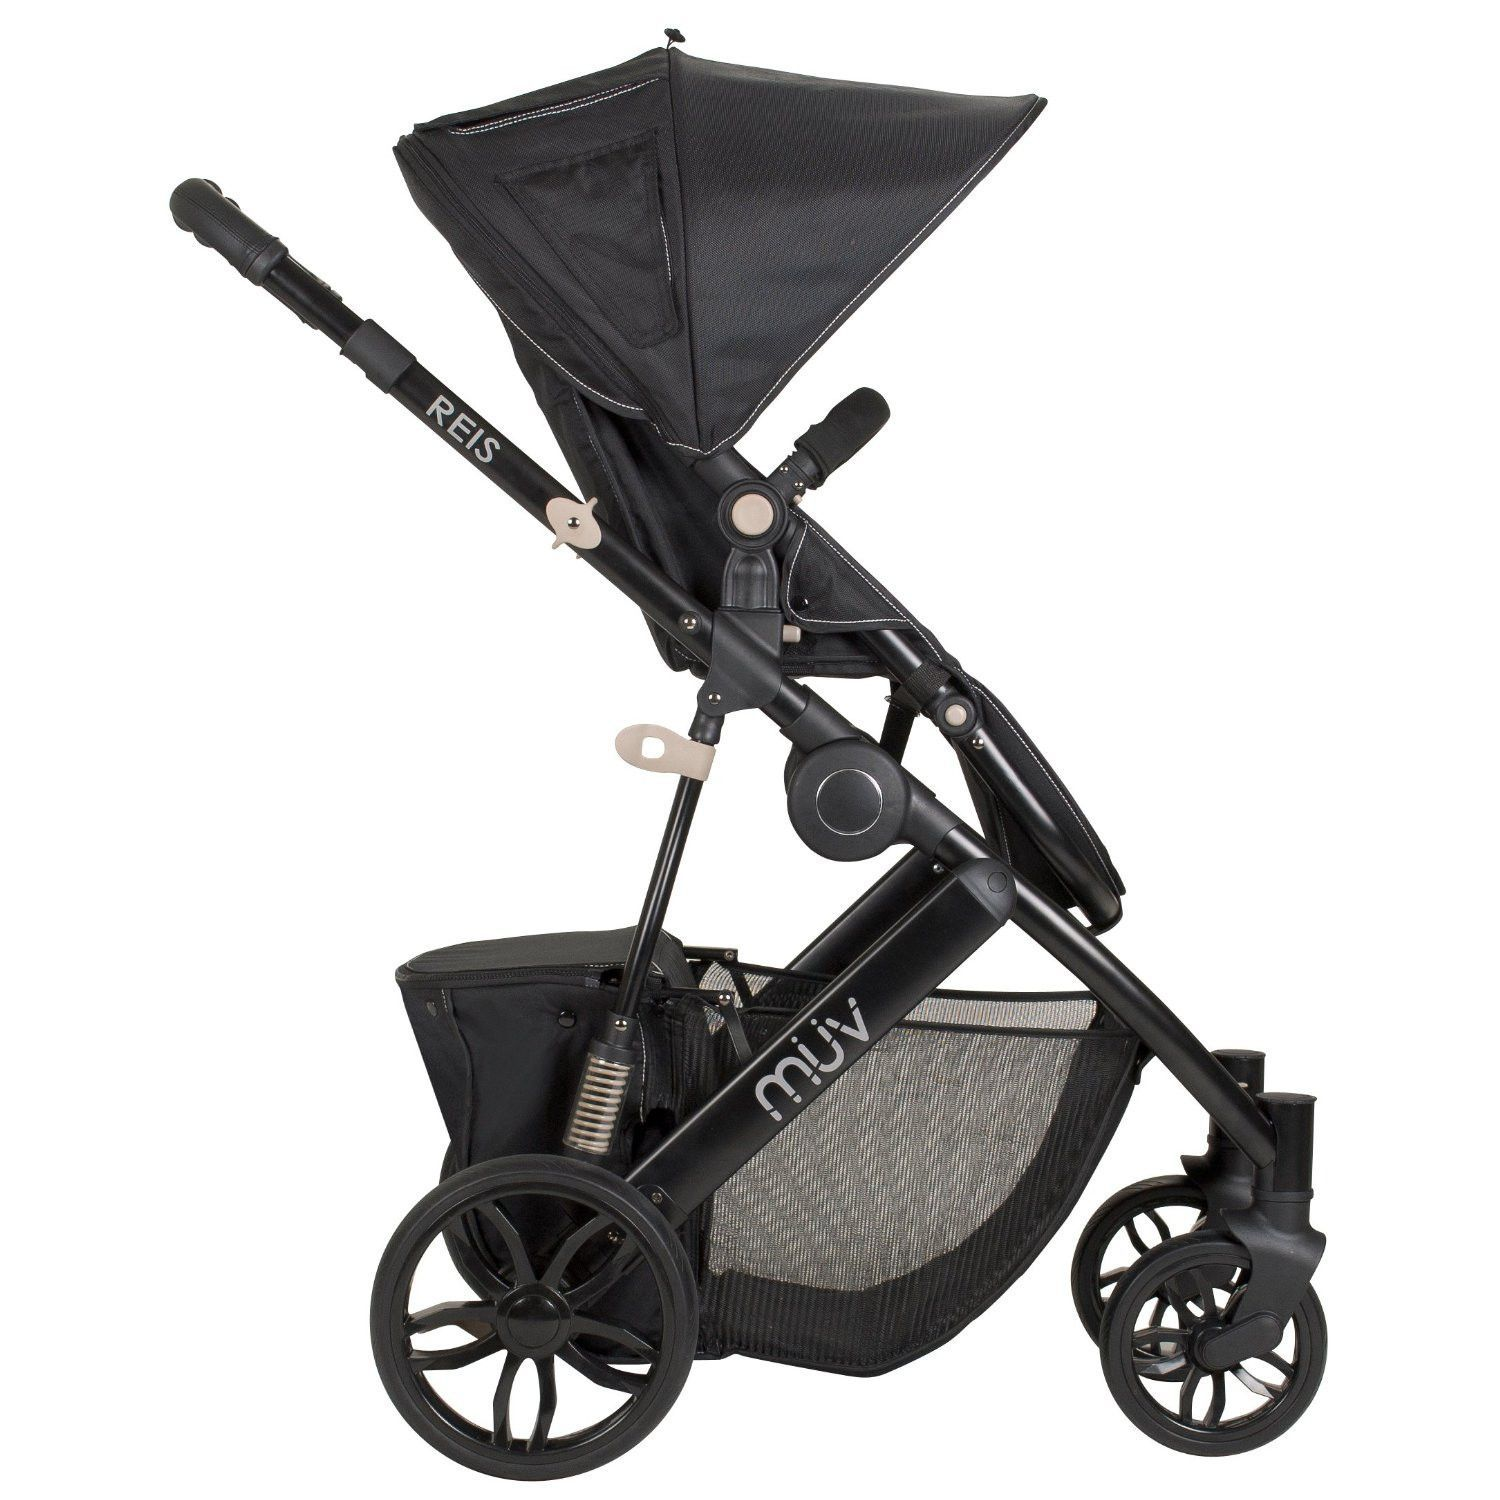 Combining style and everyday functionality, the MUV REIS